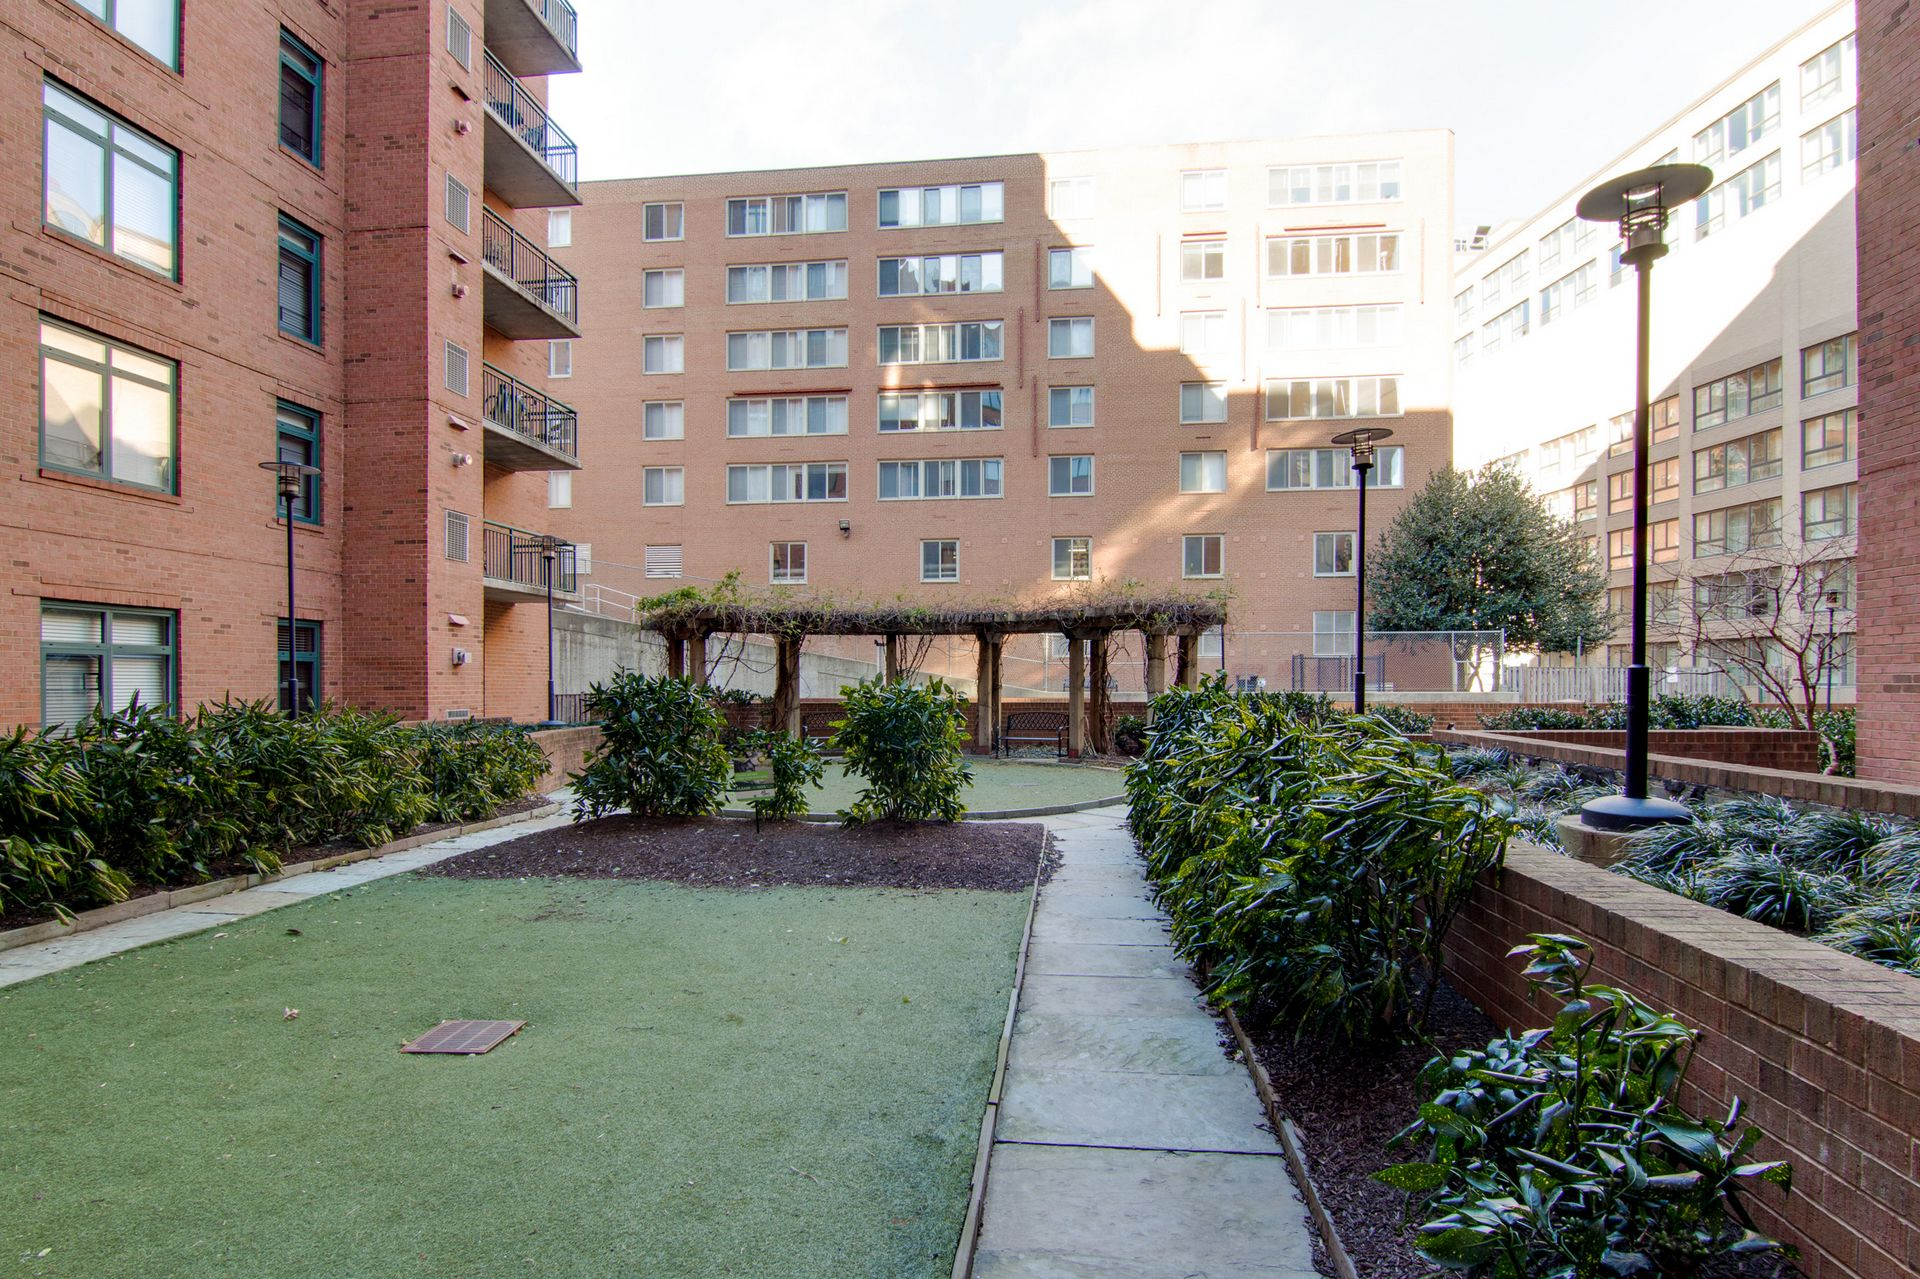 apartment courtyard with shrubs and trellis